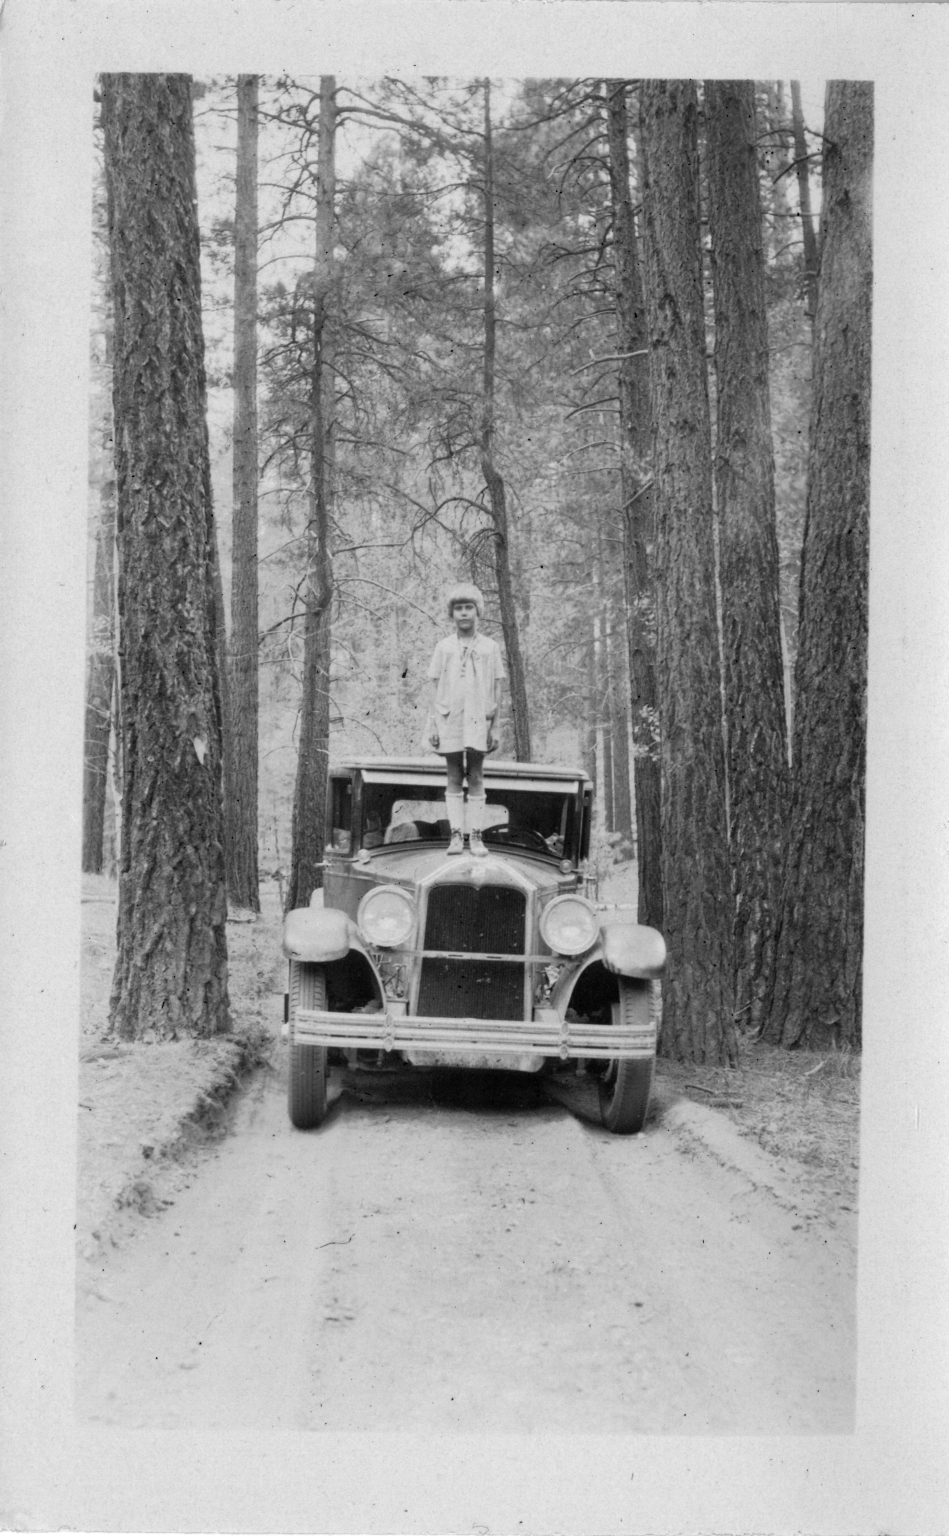 Alice standing on automobile